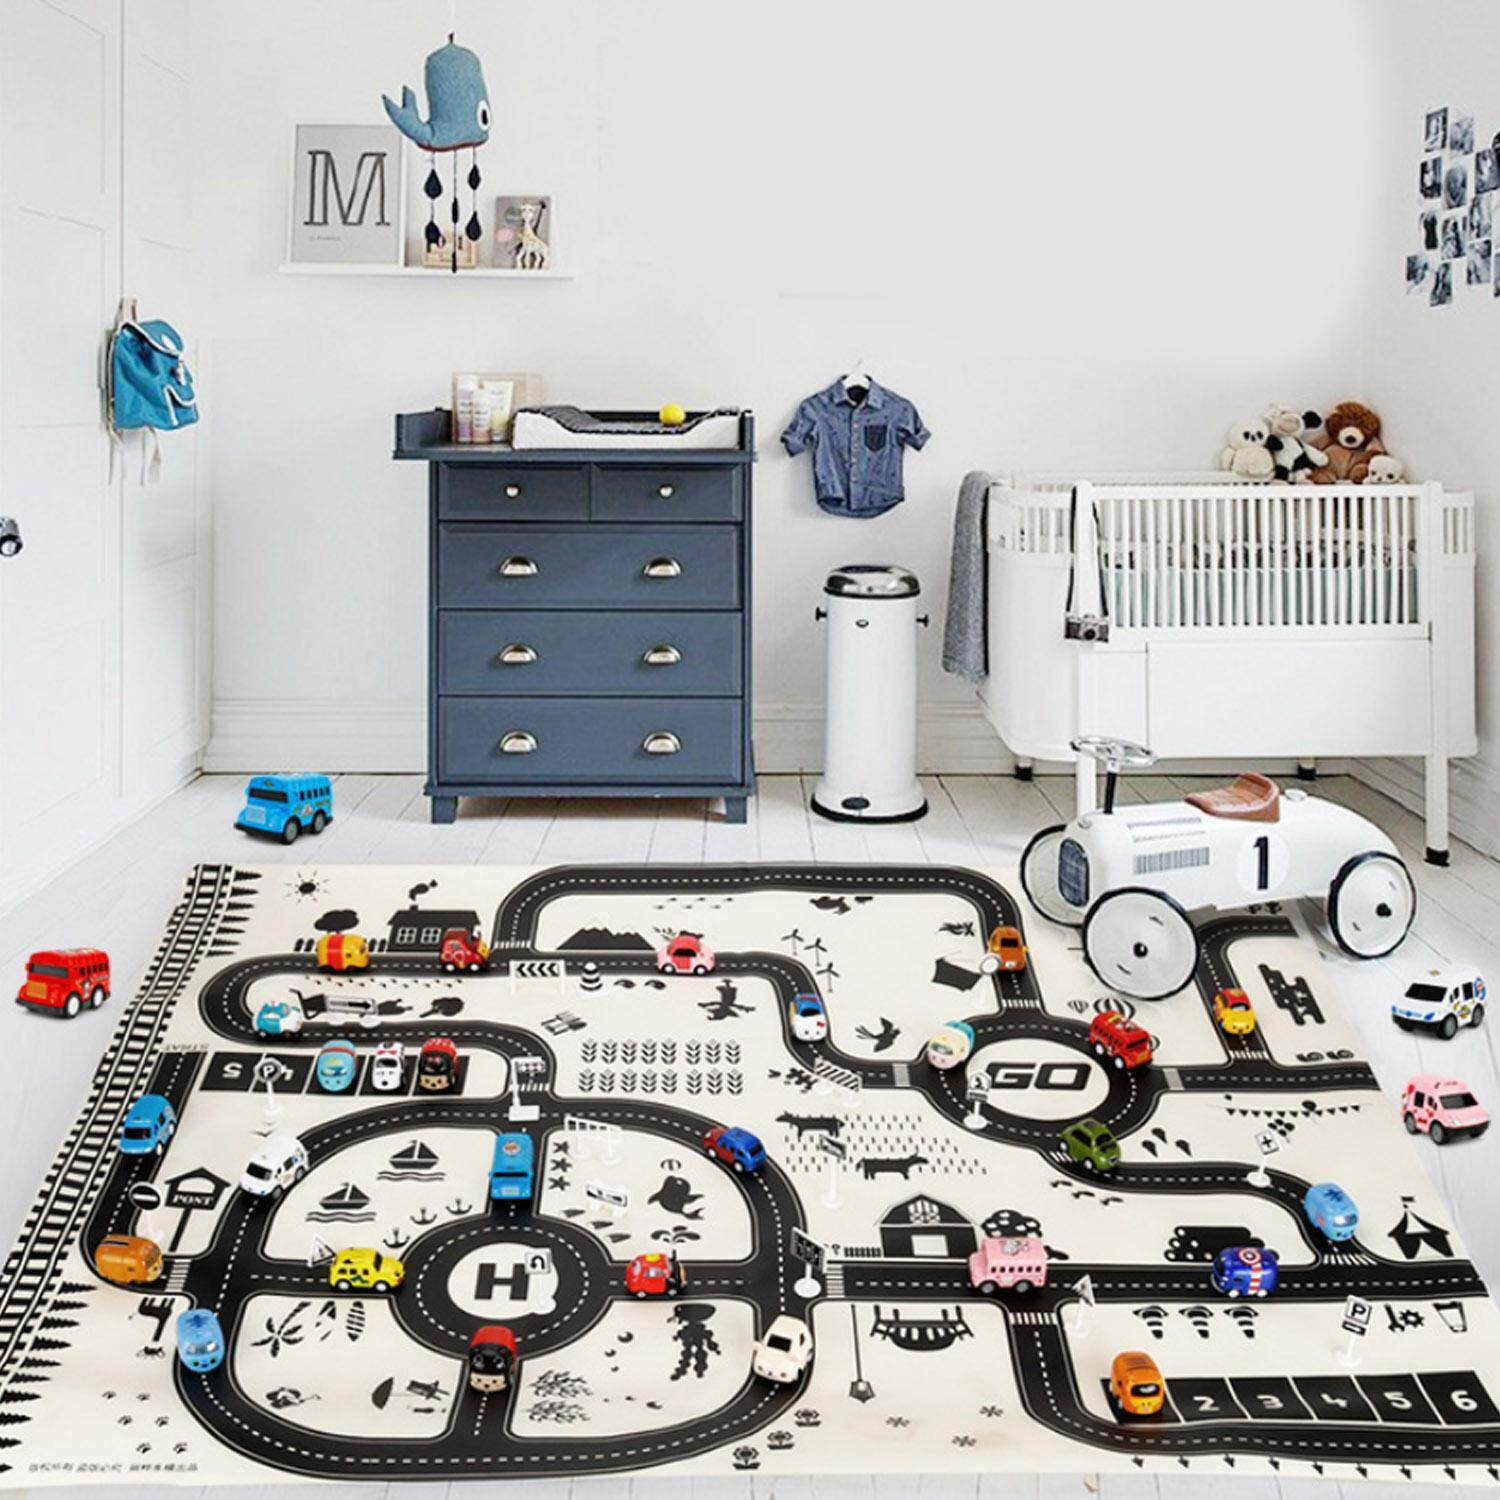 130x100cm Kids Children Traffic Road Play Playing Game Mat Educational Toy With 18pcs Signs For Home Party Birthday Christmas Gift By Jelly Store.